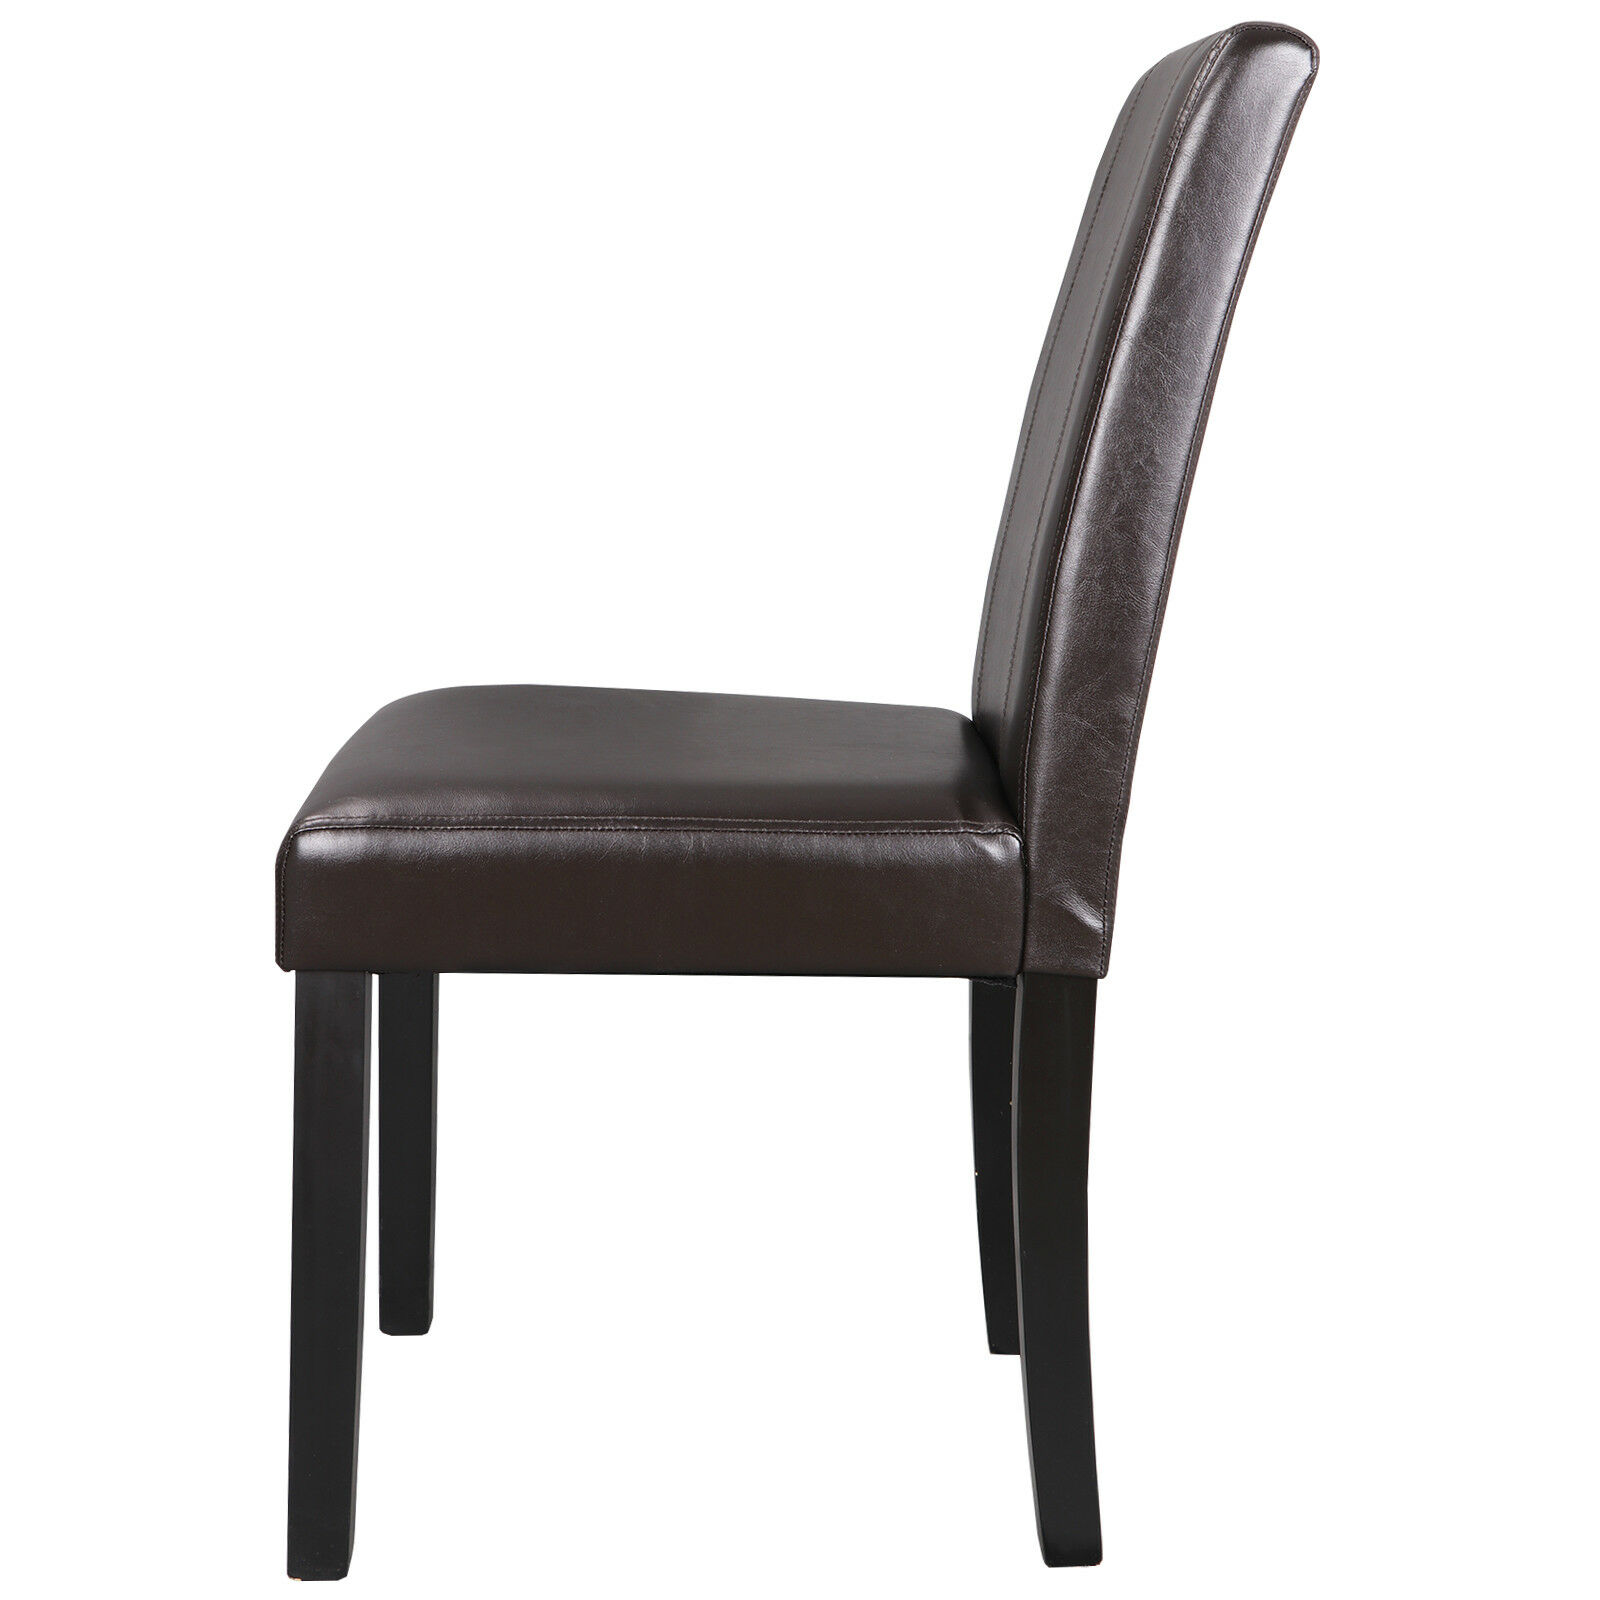 8 Set Dining Parson Room Chairs Kitchen Formal Elegant Leather Design  Brown Chairs